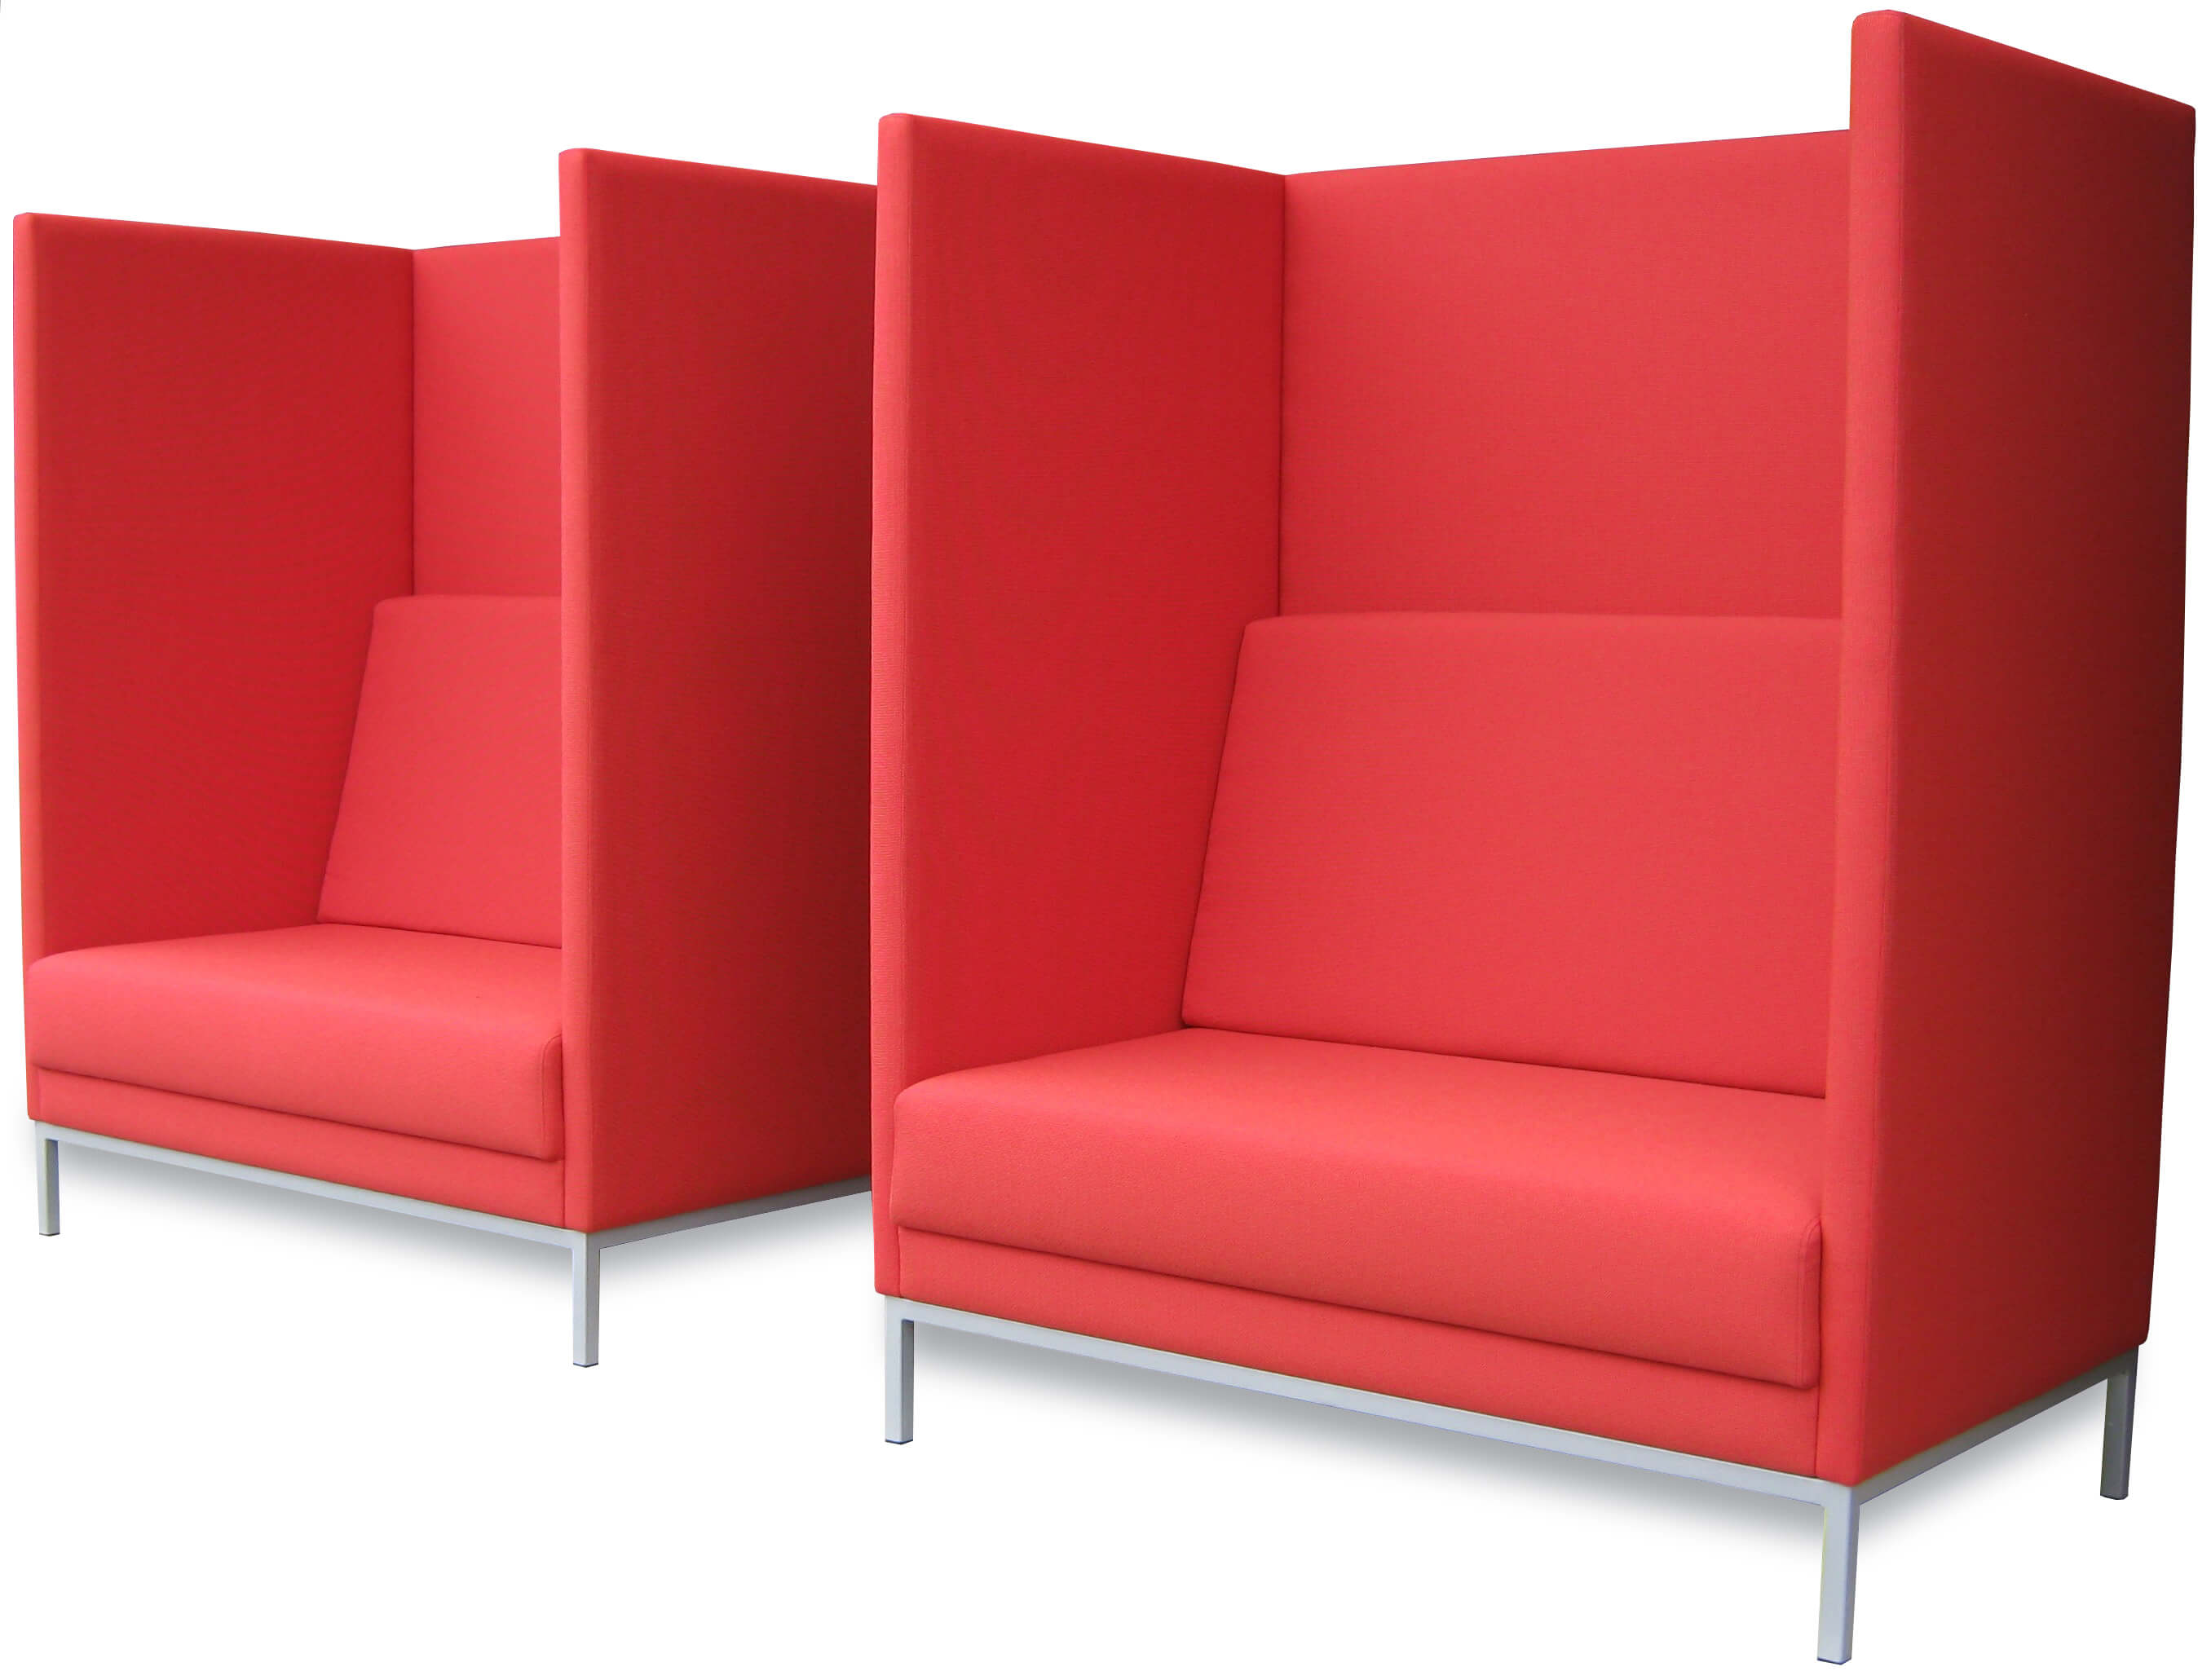 sofa manufacturing companies in india kohler furniture booth seating